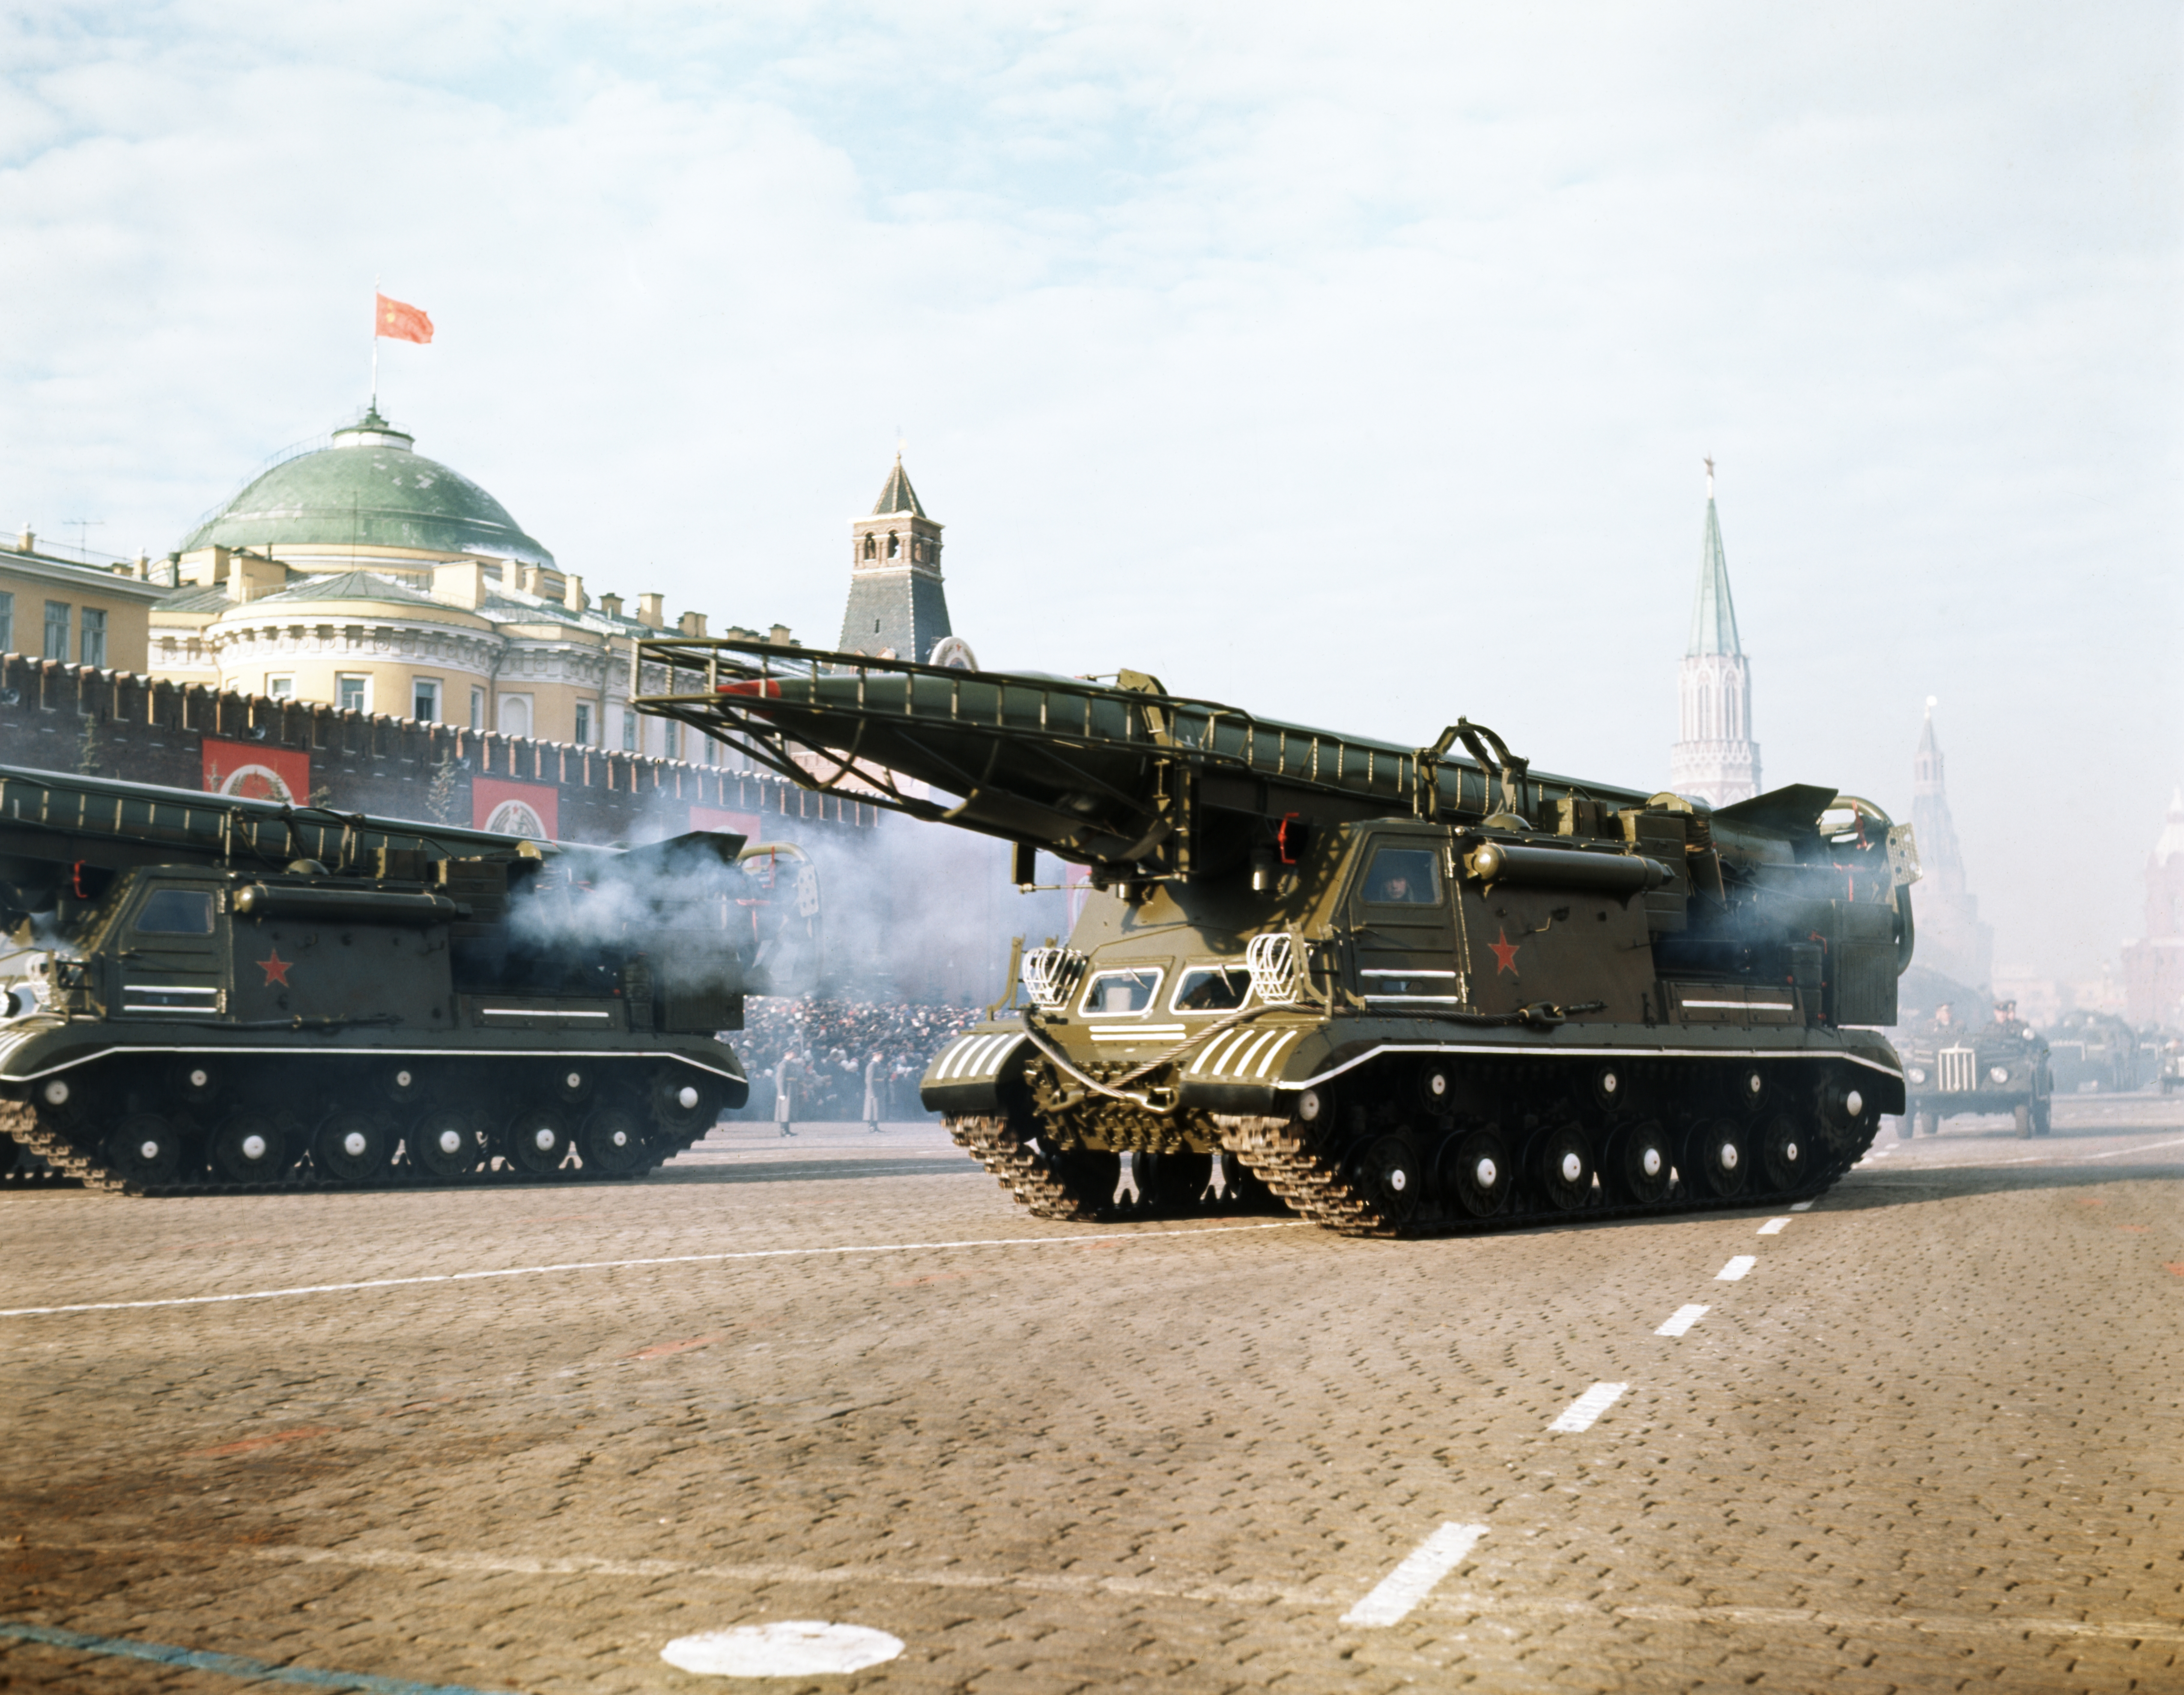 Motorized ballistic missile launchers bearing Scud tactical nuclear missiles at a military parade in Red Square celebrating the anniversary of the October Revolution in Moscow, in the early 1980s.